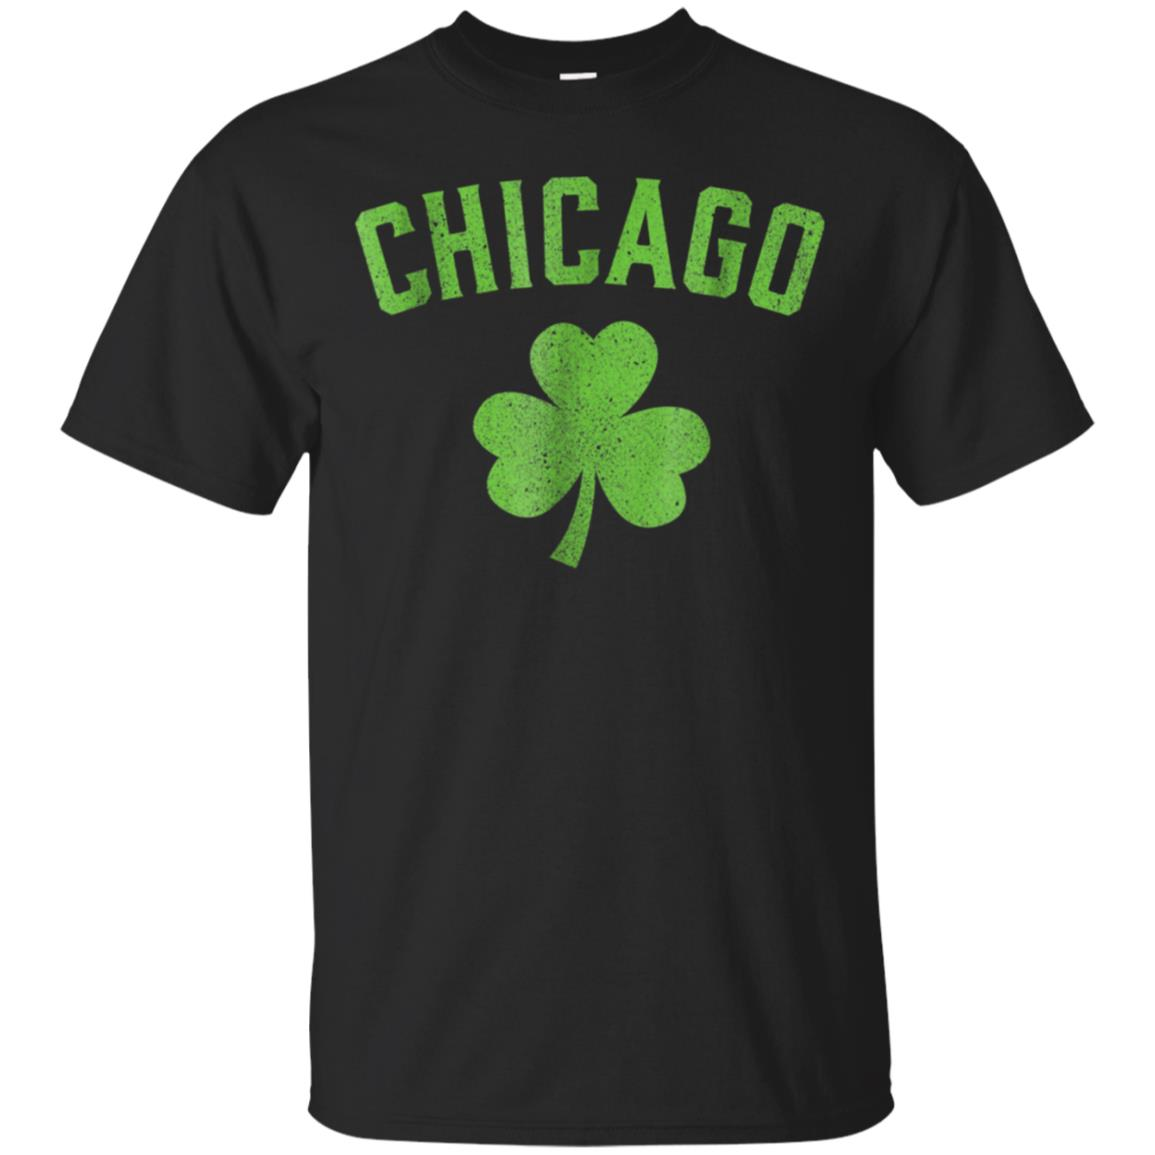 Chicago, St Patrick's day tshirt - Patty's day shamrock tee 99promocode